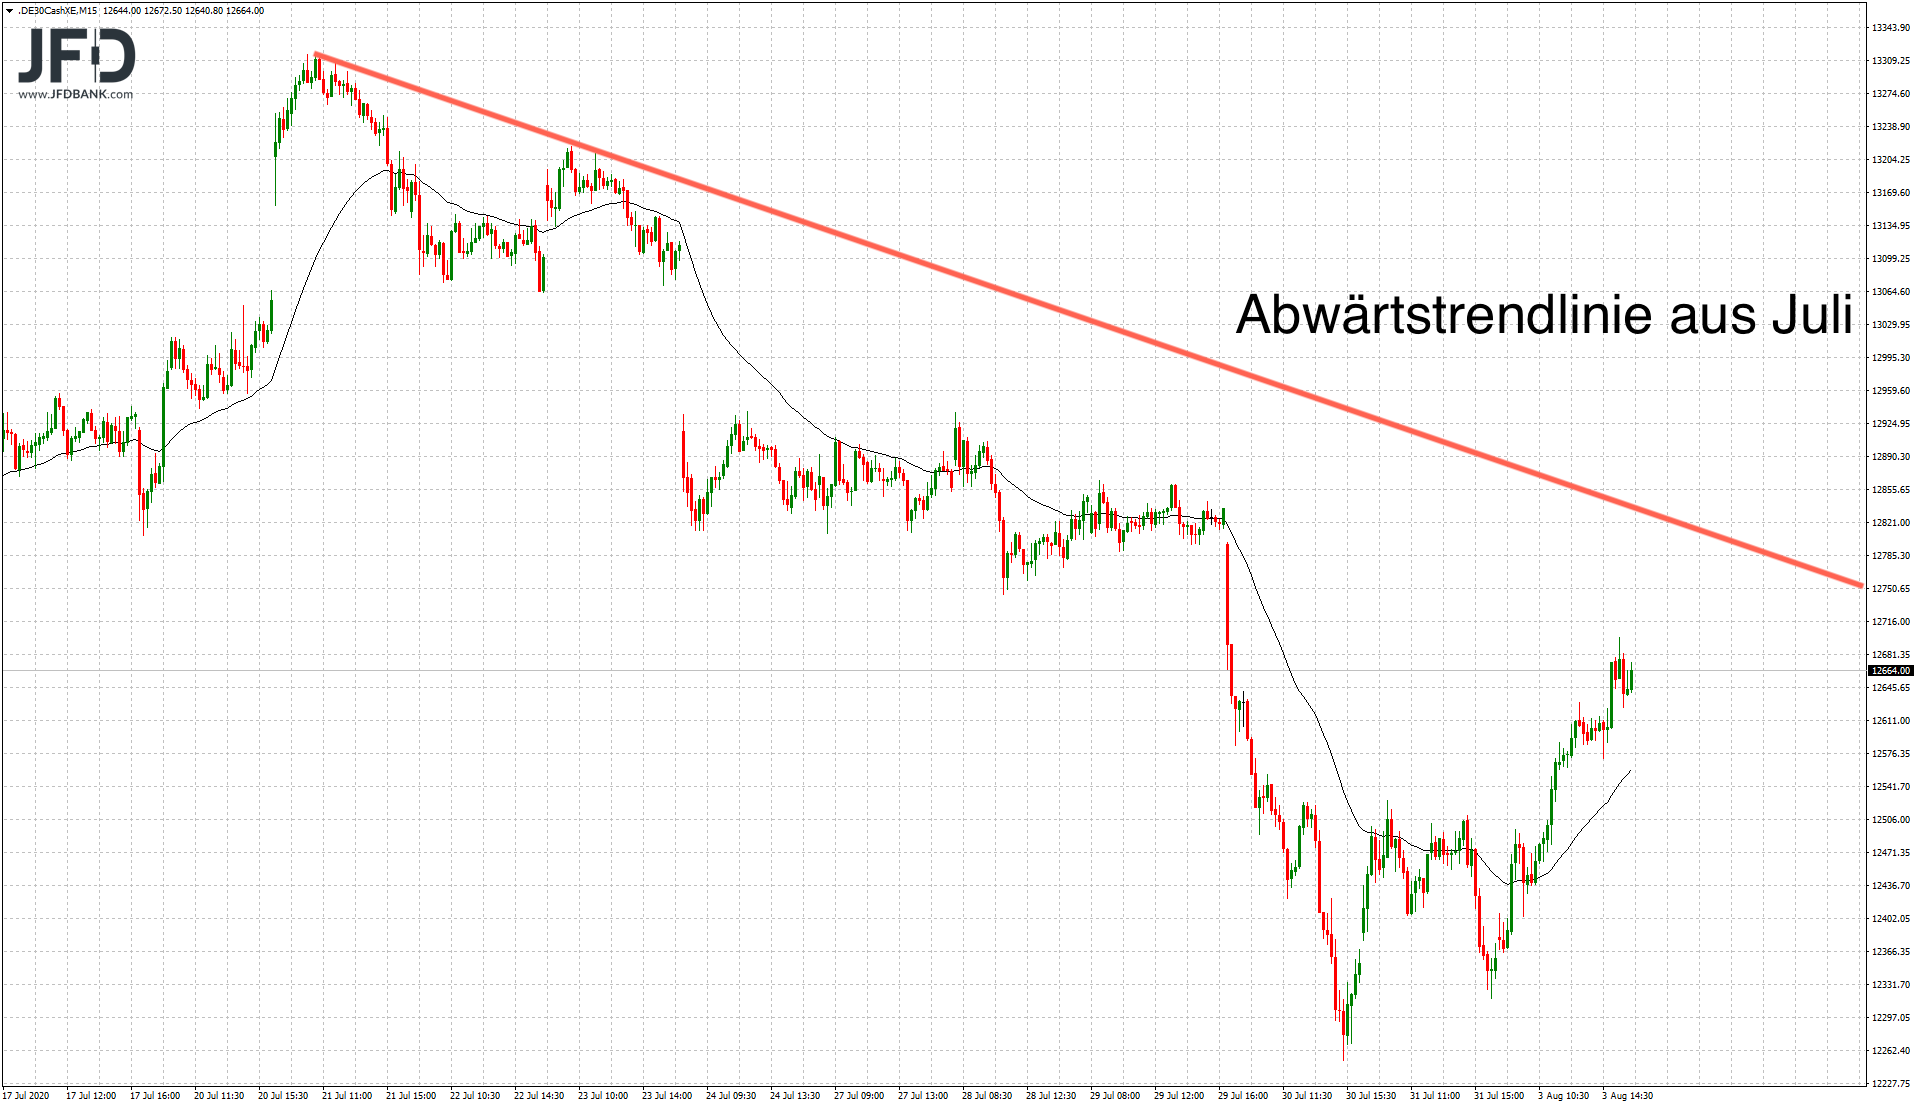 DAX-Start-in-den-August-gelungen-Kommentar-JFD-Bank-GodmodeTrader.de-6